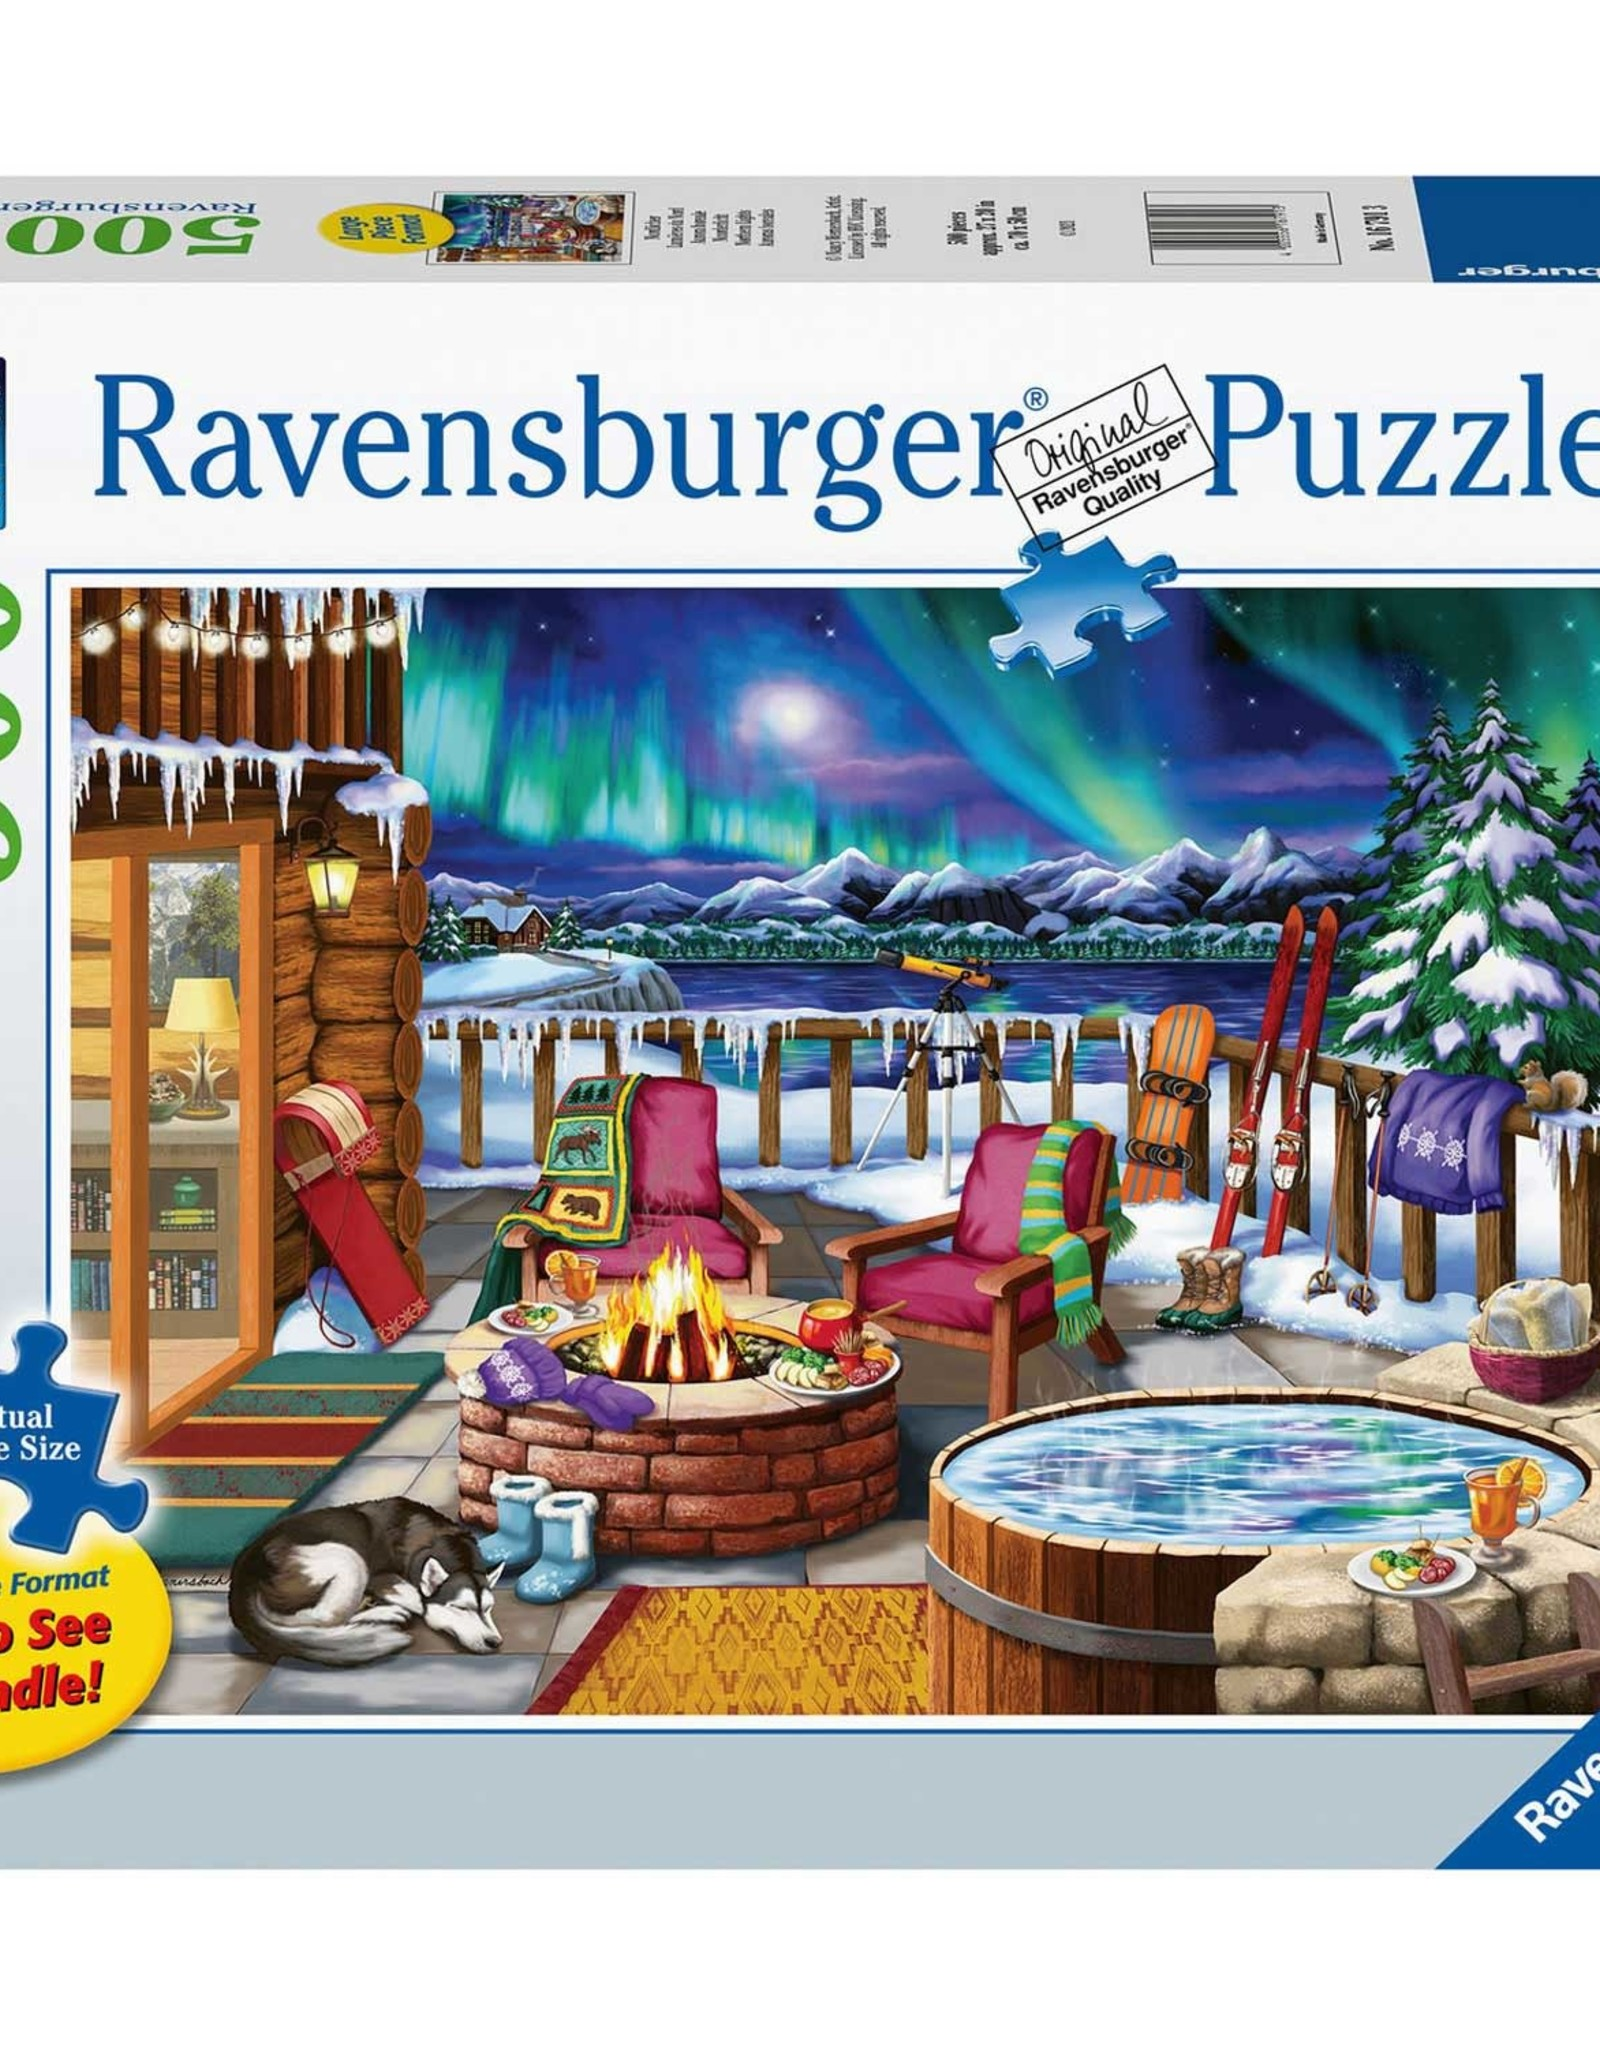 Ravensburger 500pc LF puzzle Northern Lights